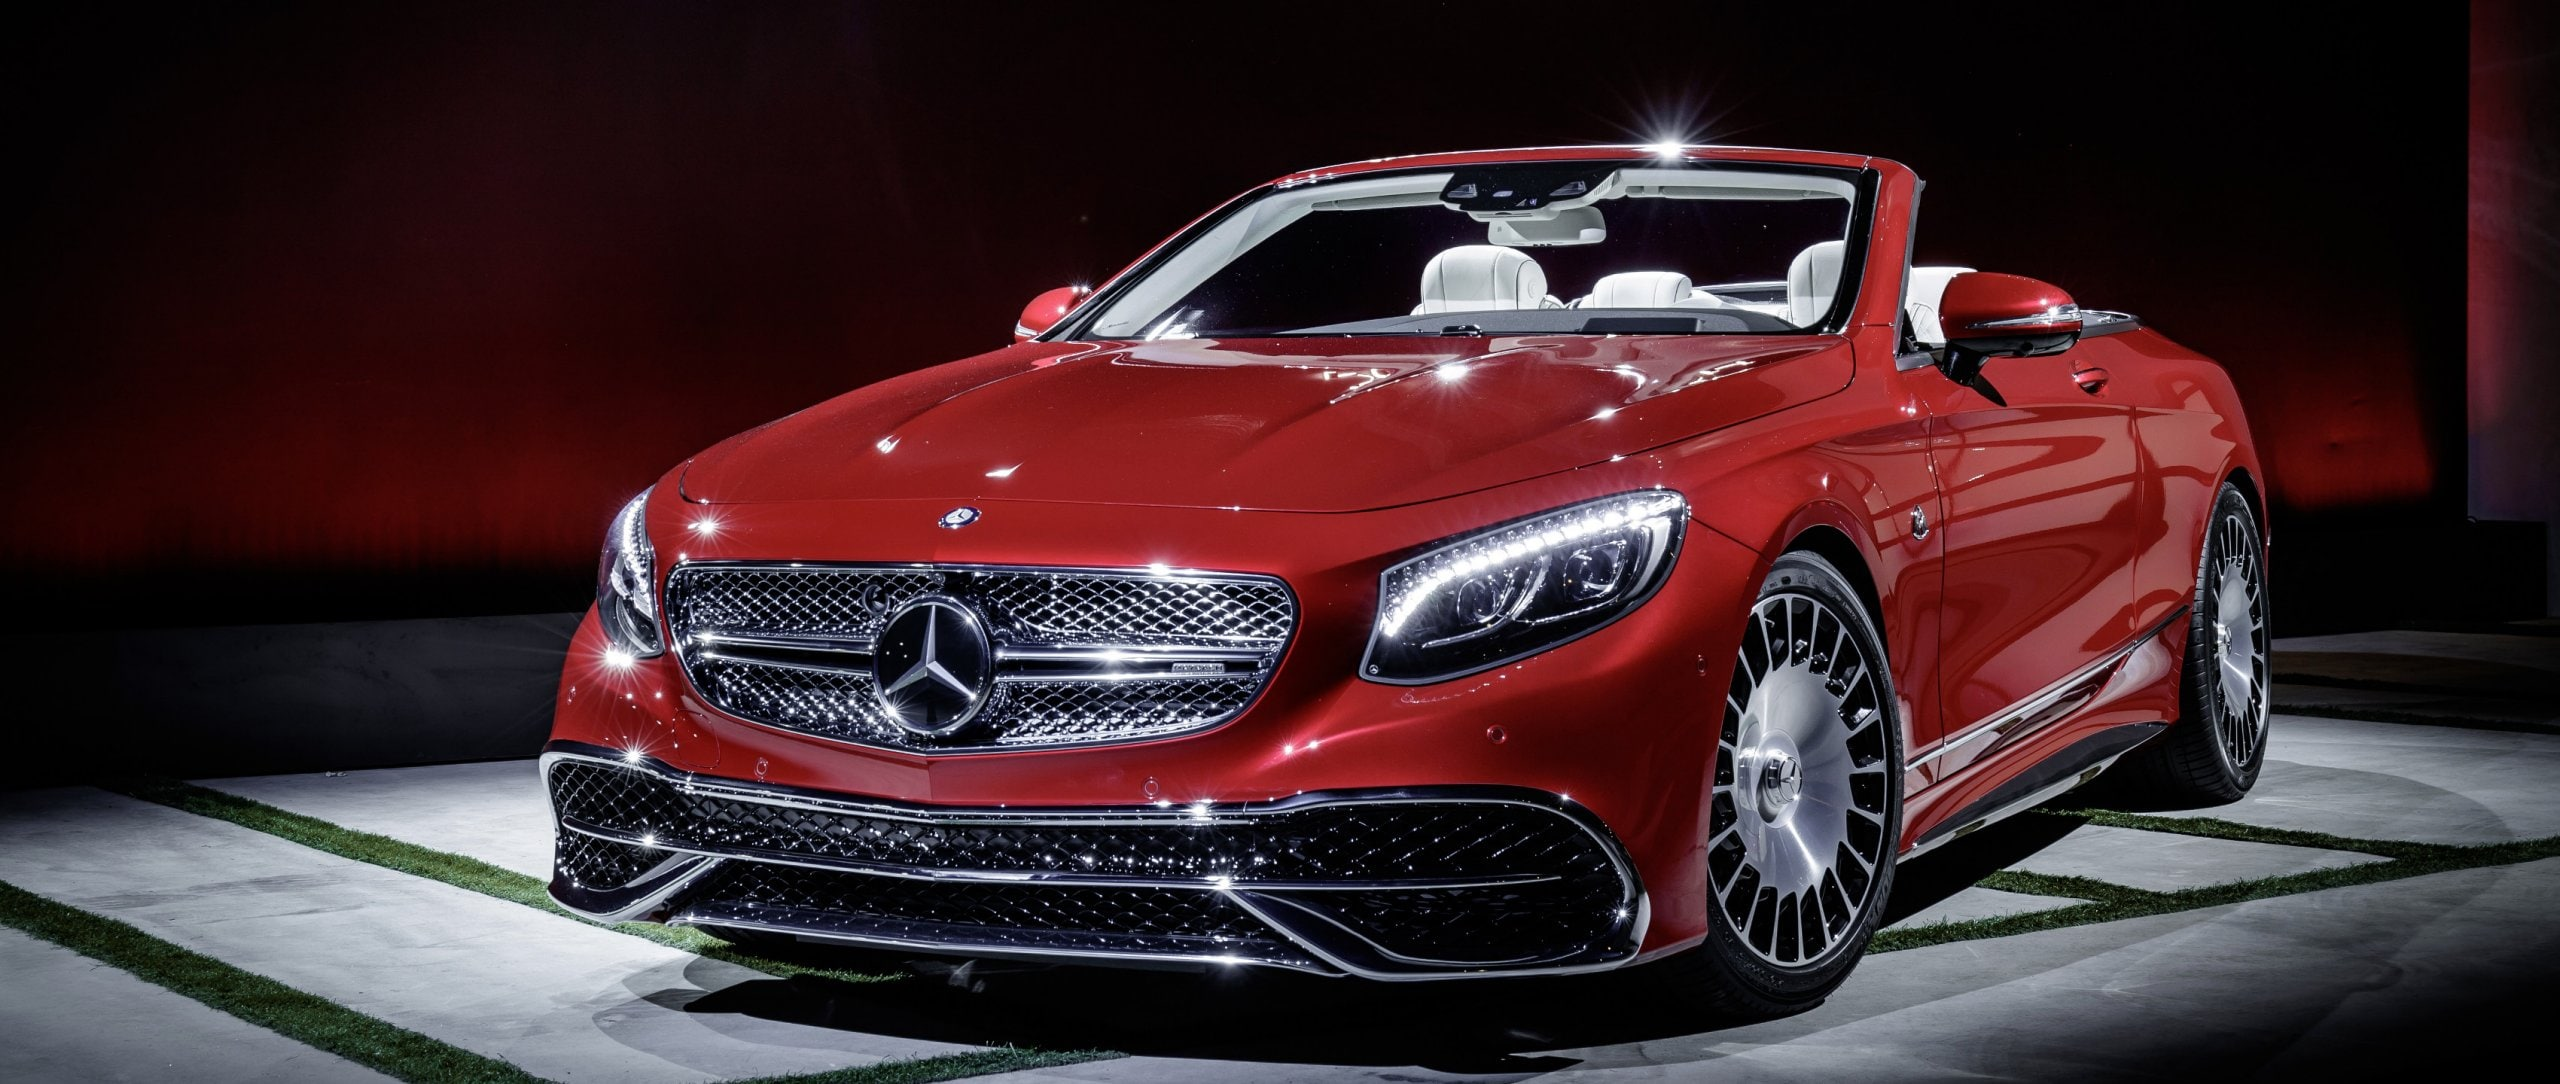 The Mercedes-Maybach S 650 Cabriolet is celebrating its debut at the LA Auto Show and is all set to hit markets in the spring of 2017 – limited to 300 examples.